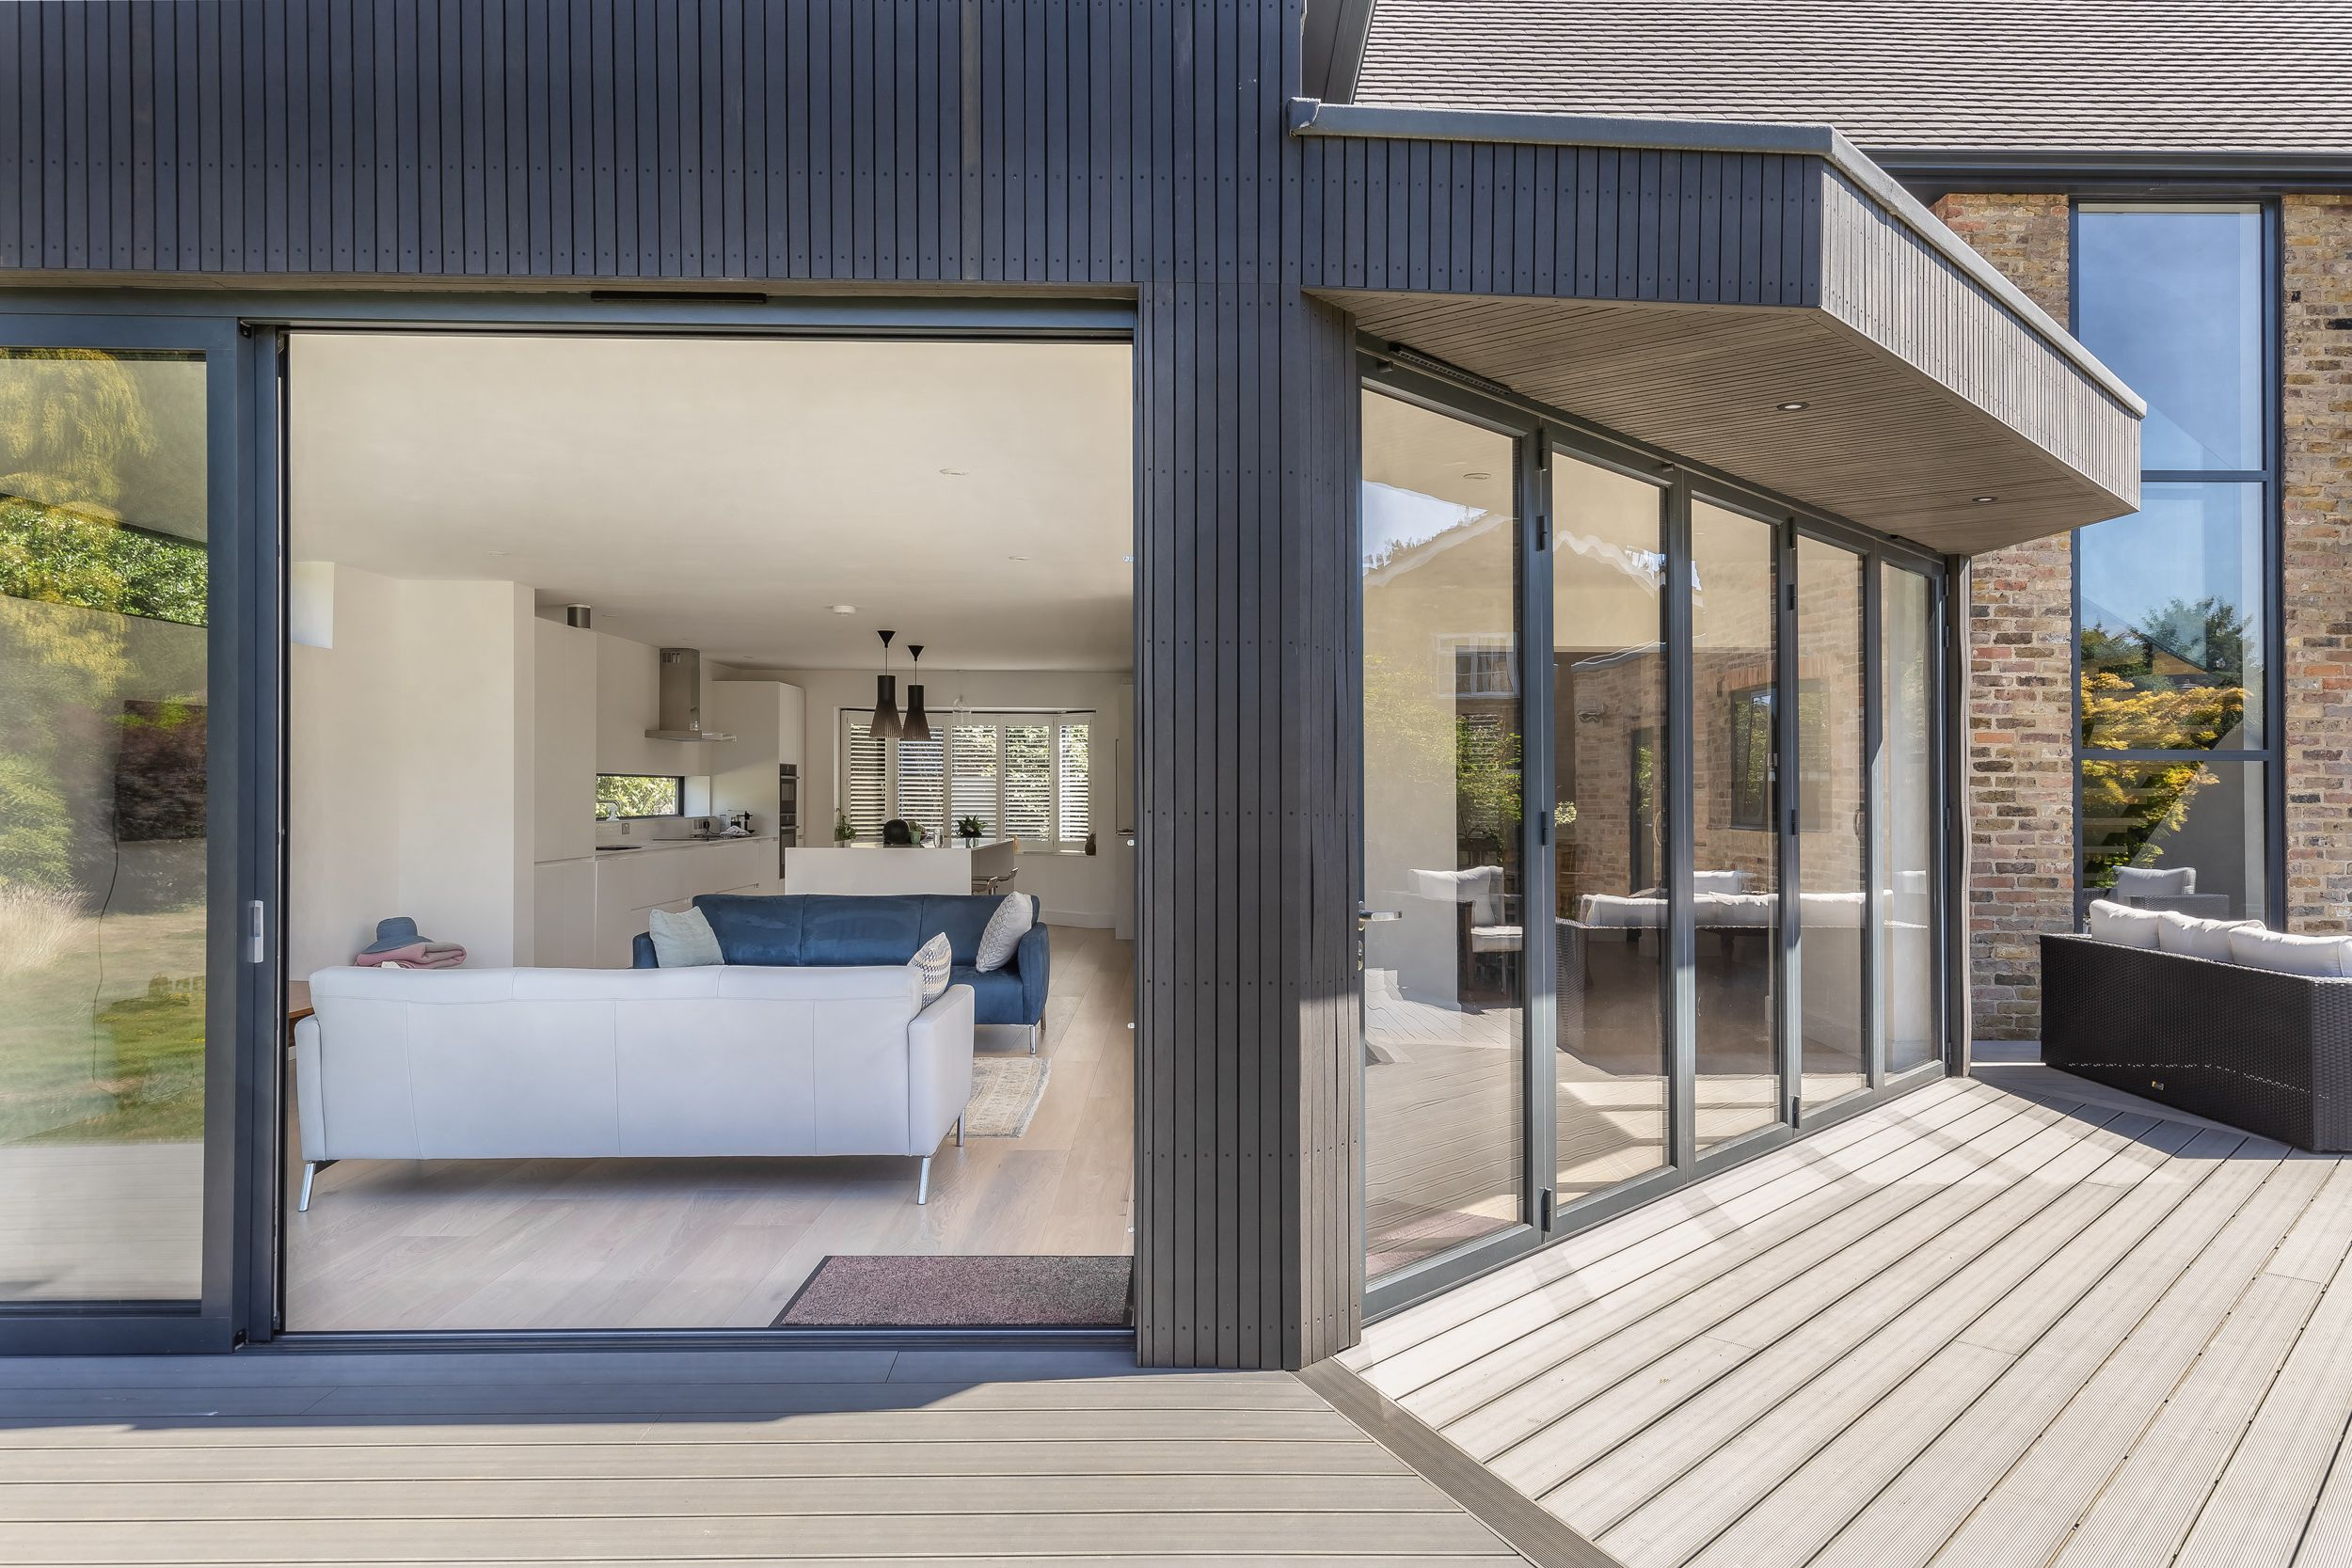 Angled Extension Facade With Flat Roof Overhang Open Plan Living Decking Timber Cladding Slidin Architecture Design Timber Cladding Construction Design